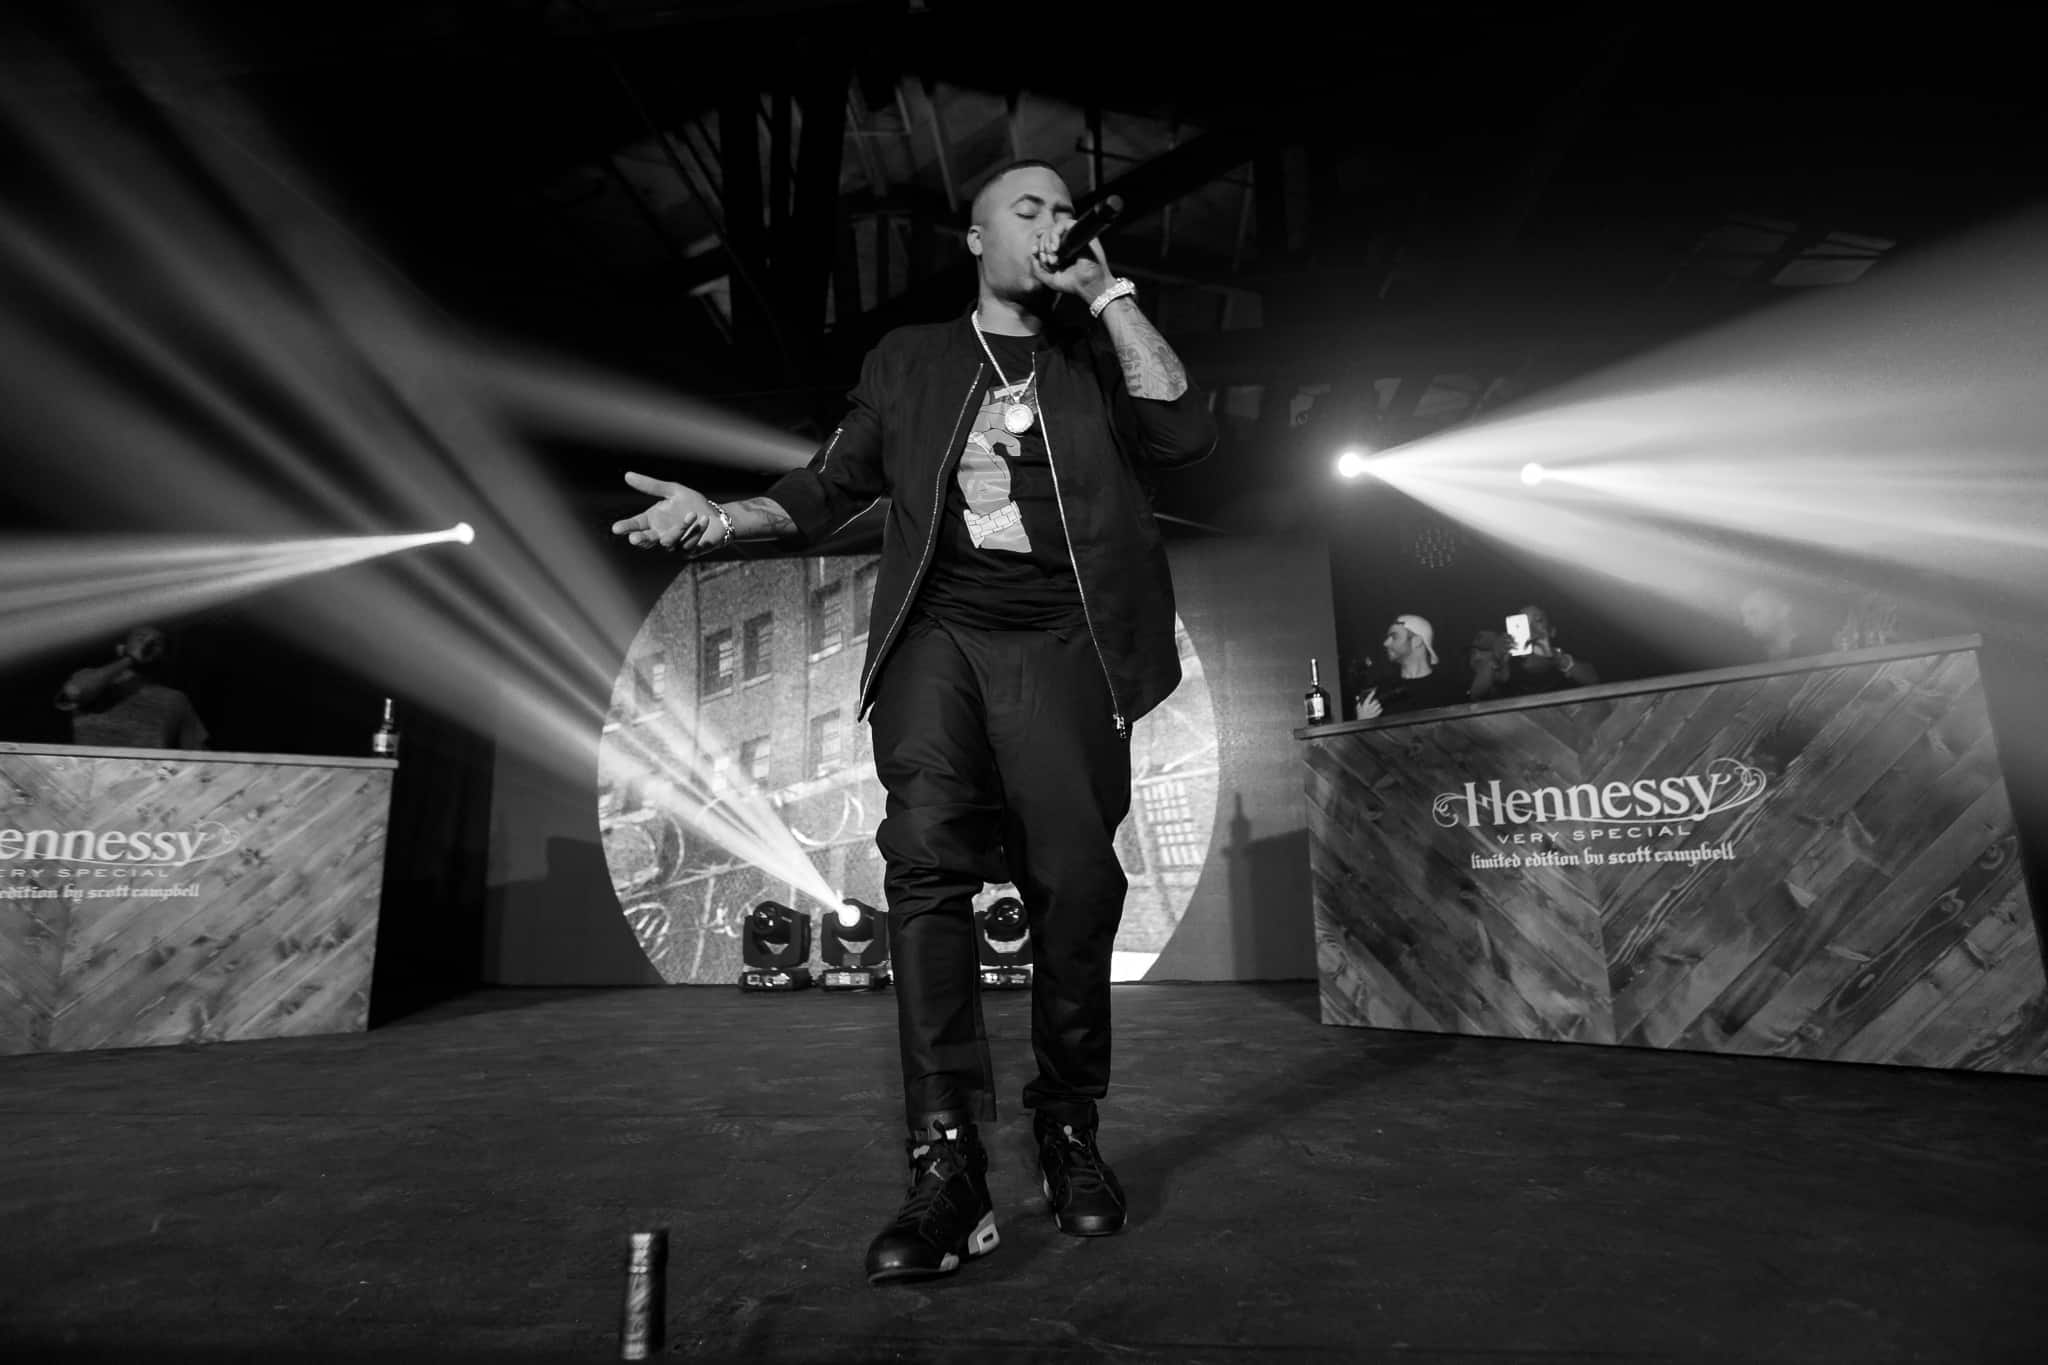 Rapper Nas at Hennessy experiential event